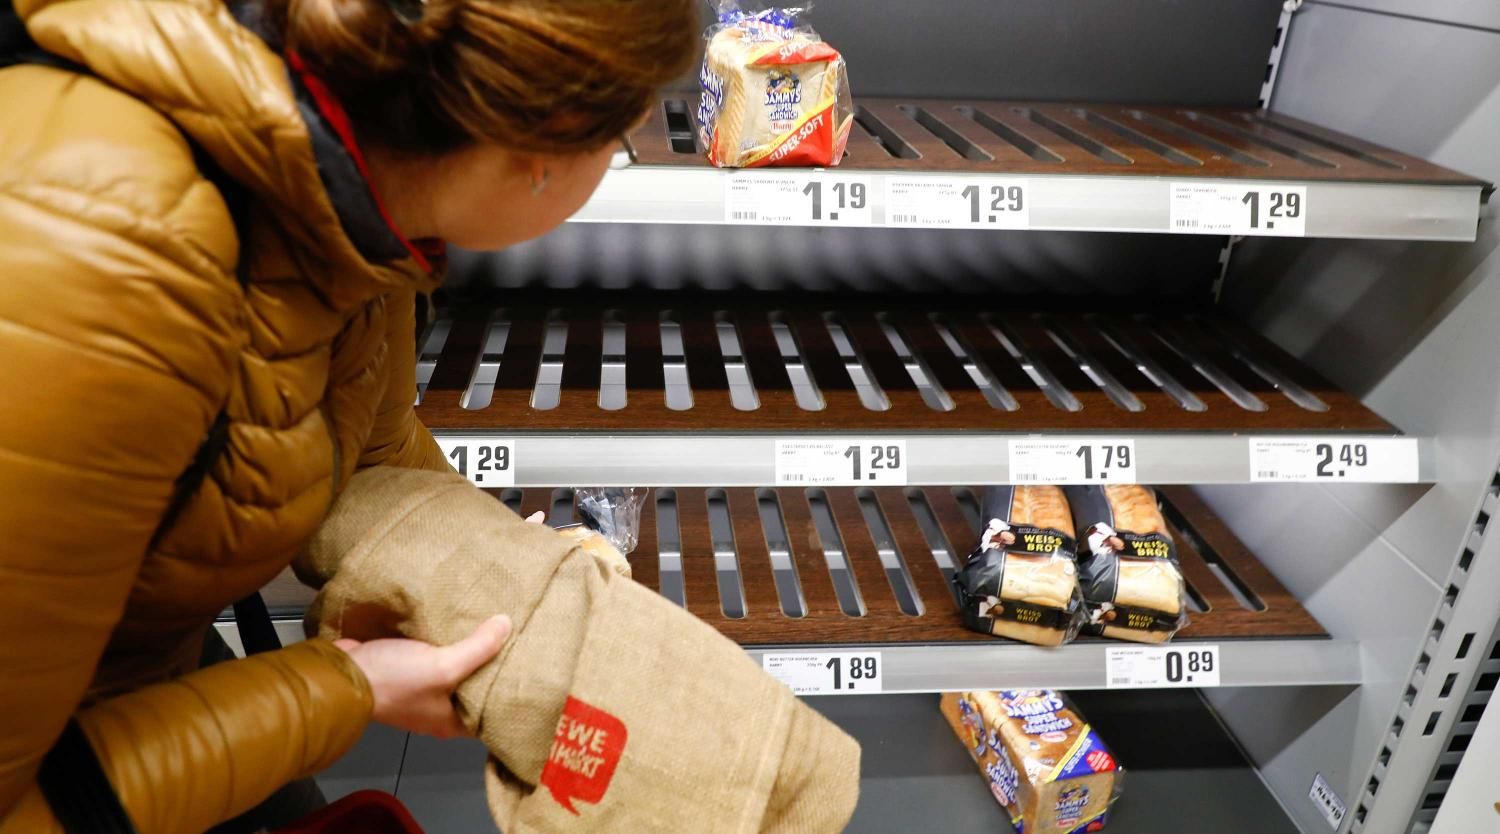 A customer looks at a shelve with bread at a Rewe grocery store in Potsdam, Germany, March 20, 2020, as the spread of the coronavirus disease (COVID-19) continues